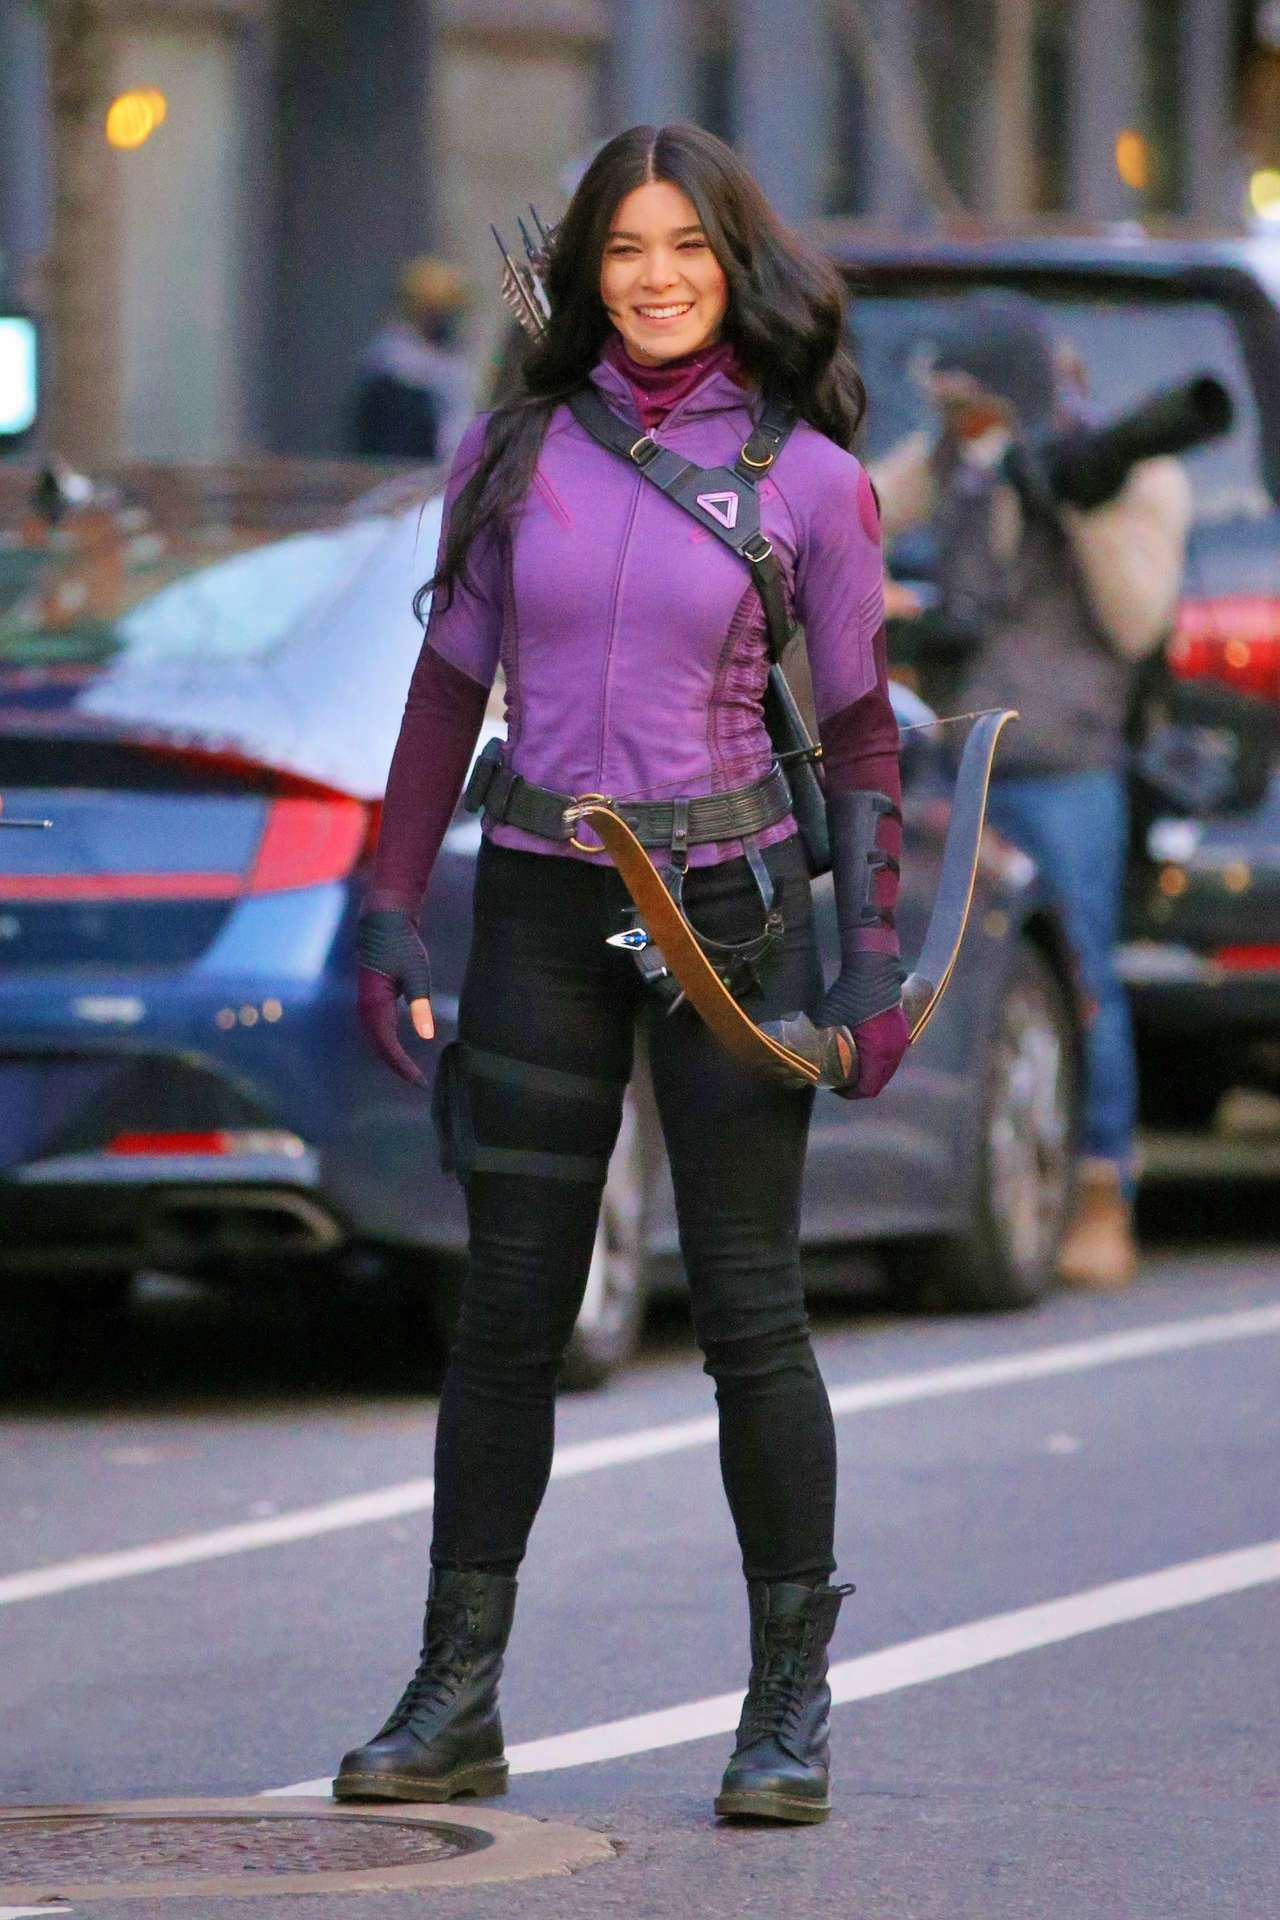 Hailee Steinfeld and Jeremy Renner on the Set of 'Hawkeye' in NYC